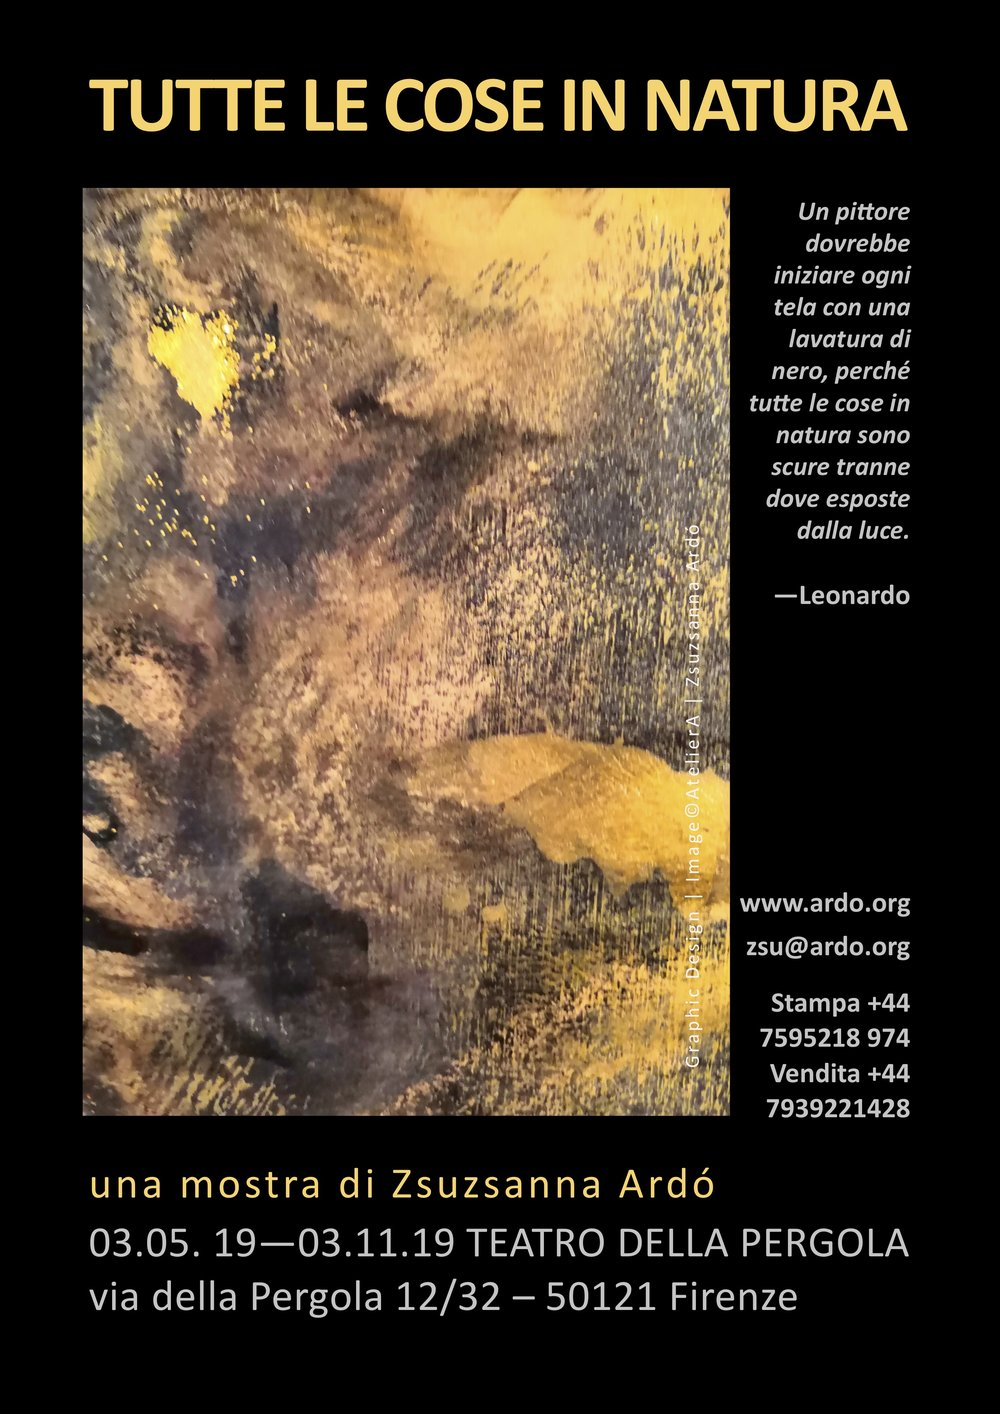 19 ALL THINGS IN NATURE Florence exhibition by Ardo POSTER Italian.jpg